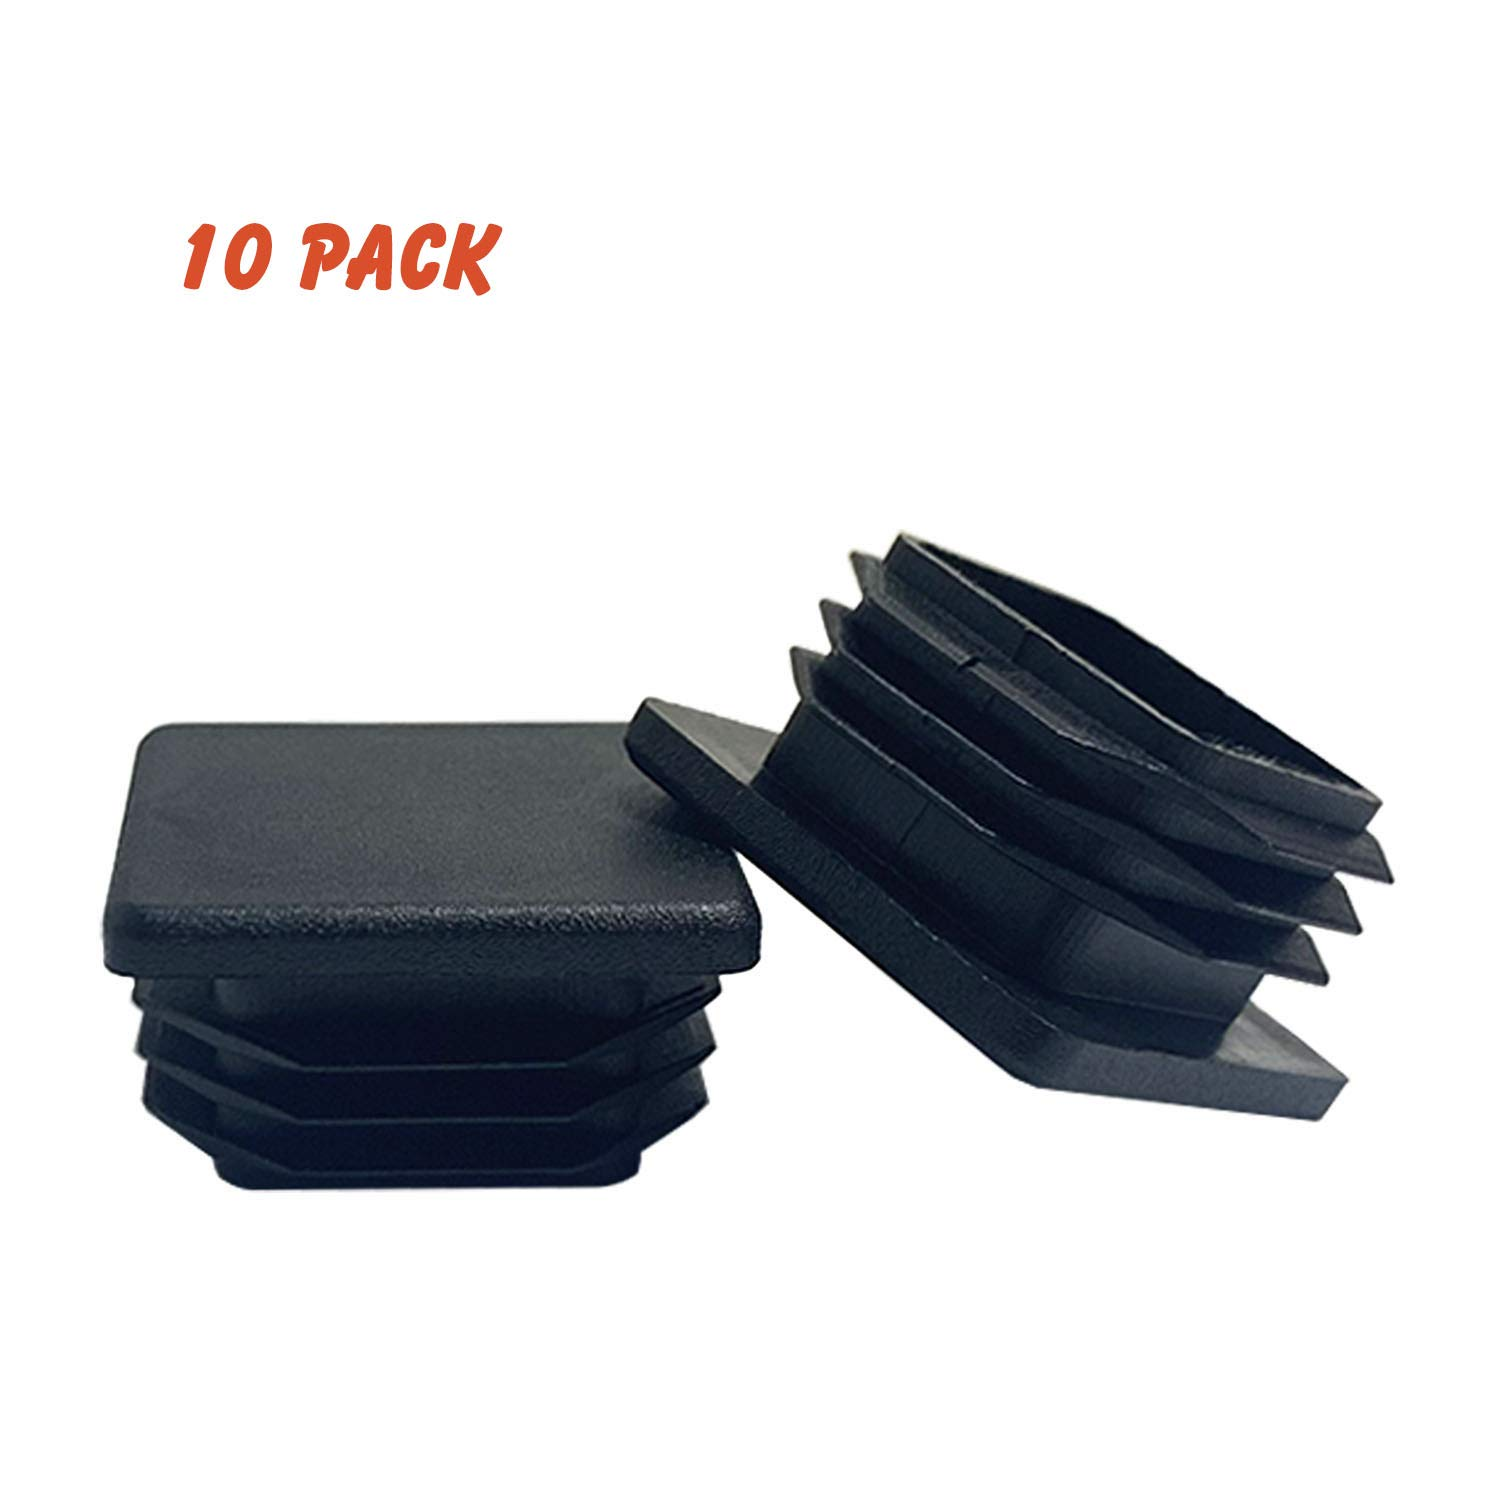 (10 Pack) OASIS 1-1/4 Inch Square Plastic Plug, Plastic End Caps for Square Tubing 1-1/4' O.D.